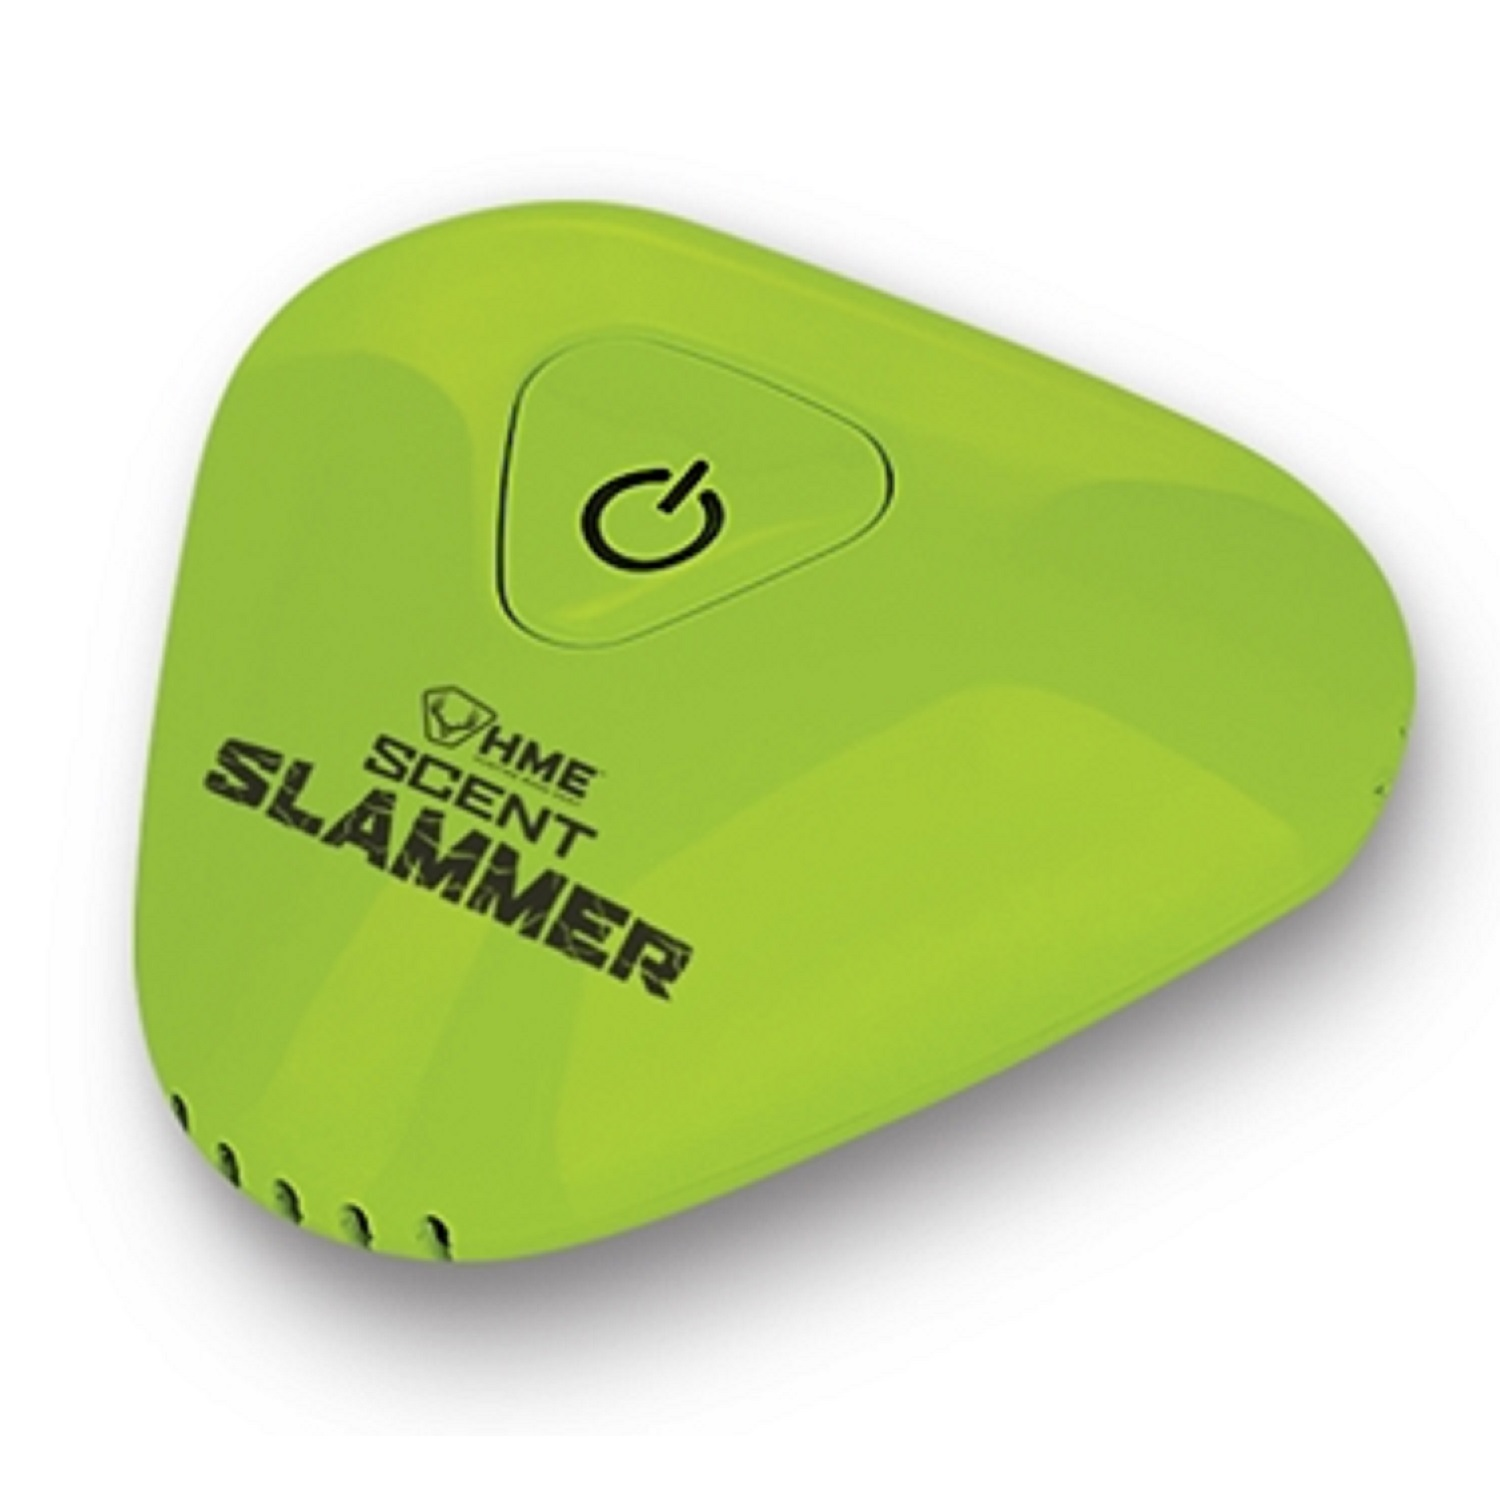 Portable Ozone Air Cleaner